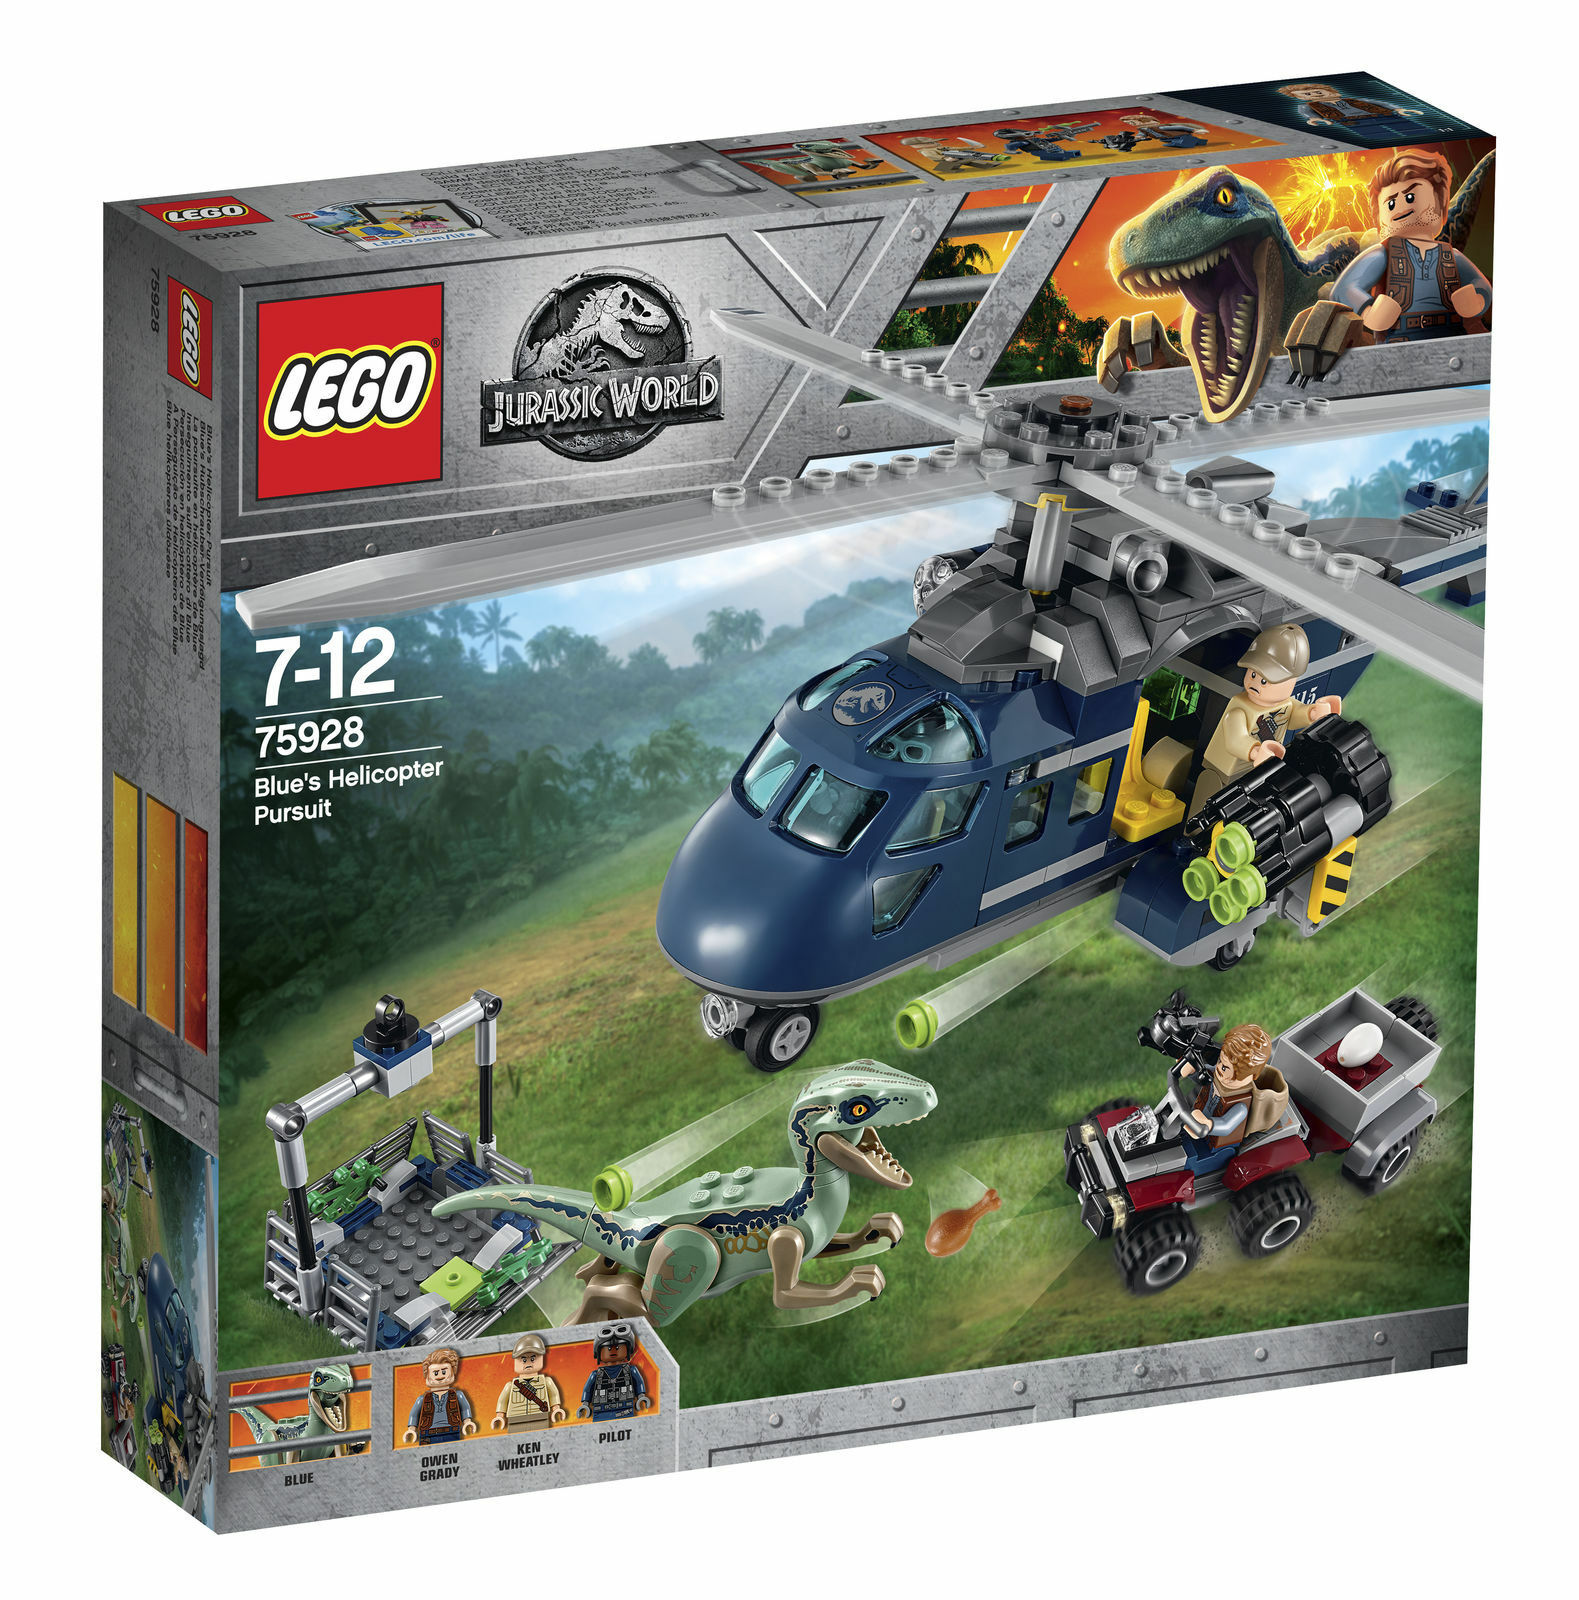 LEGO Jurassic World Blau's Helicopter Pursuit 2018 75928 BRAND NEW BOXED GIFT